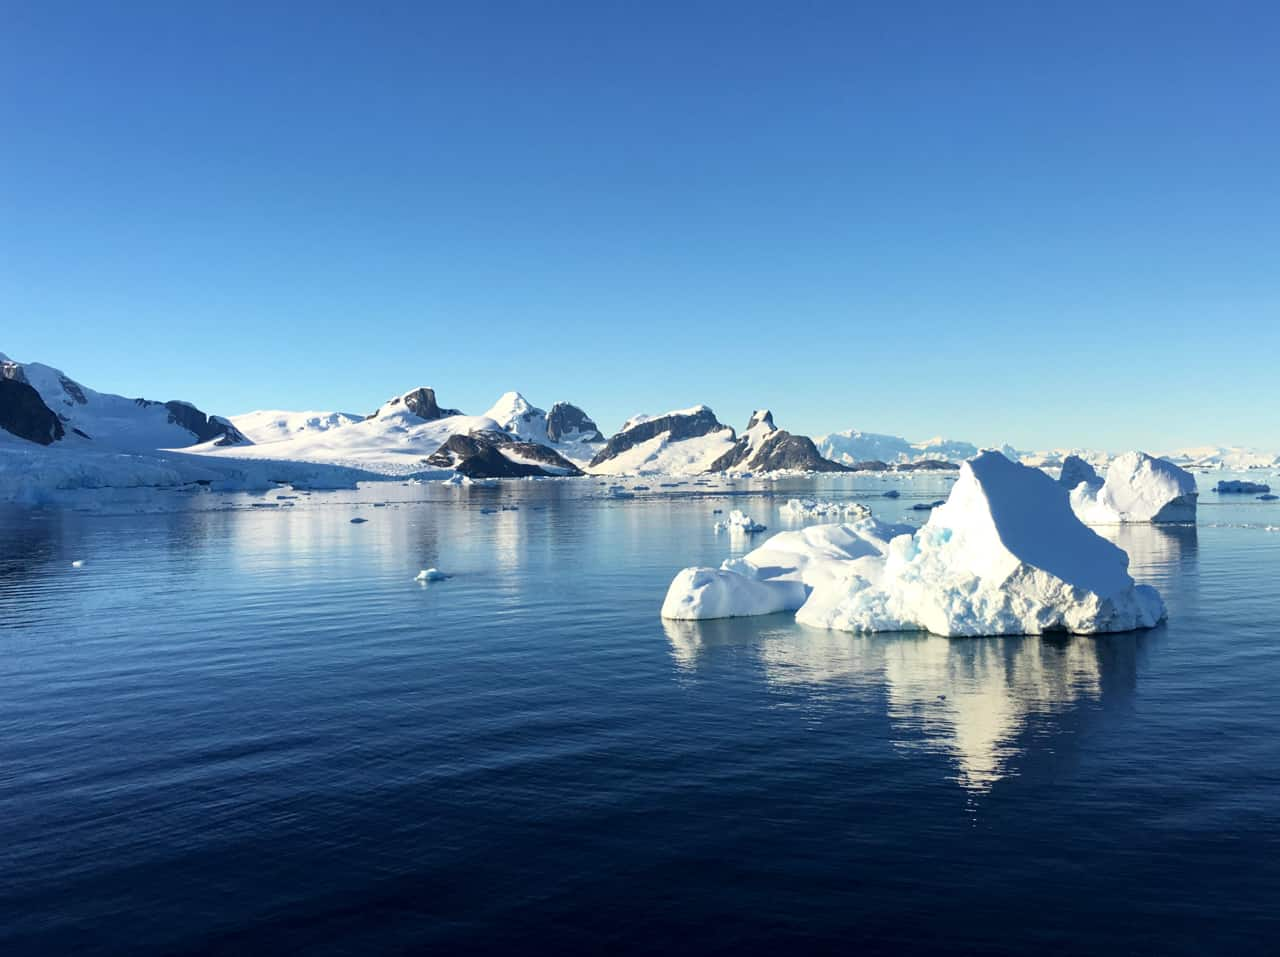 Icebergs float in dark blue water in front of a pristine ice and rock landscape in Antarctica.